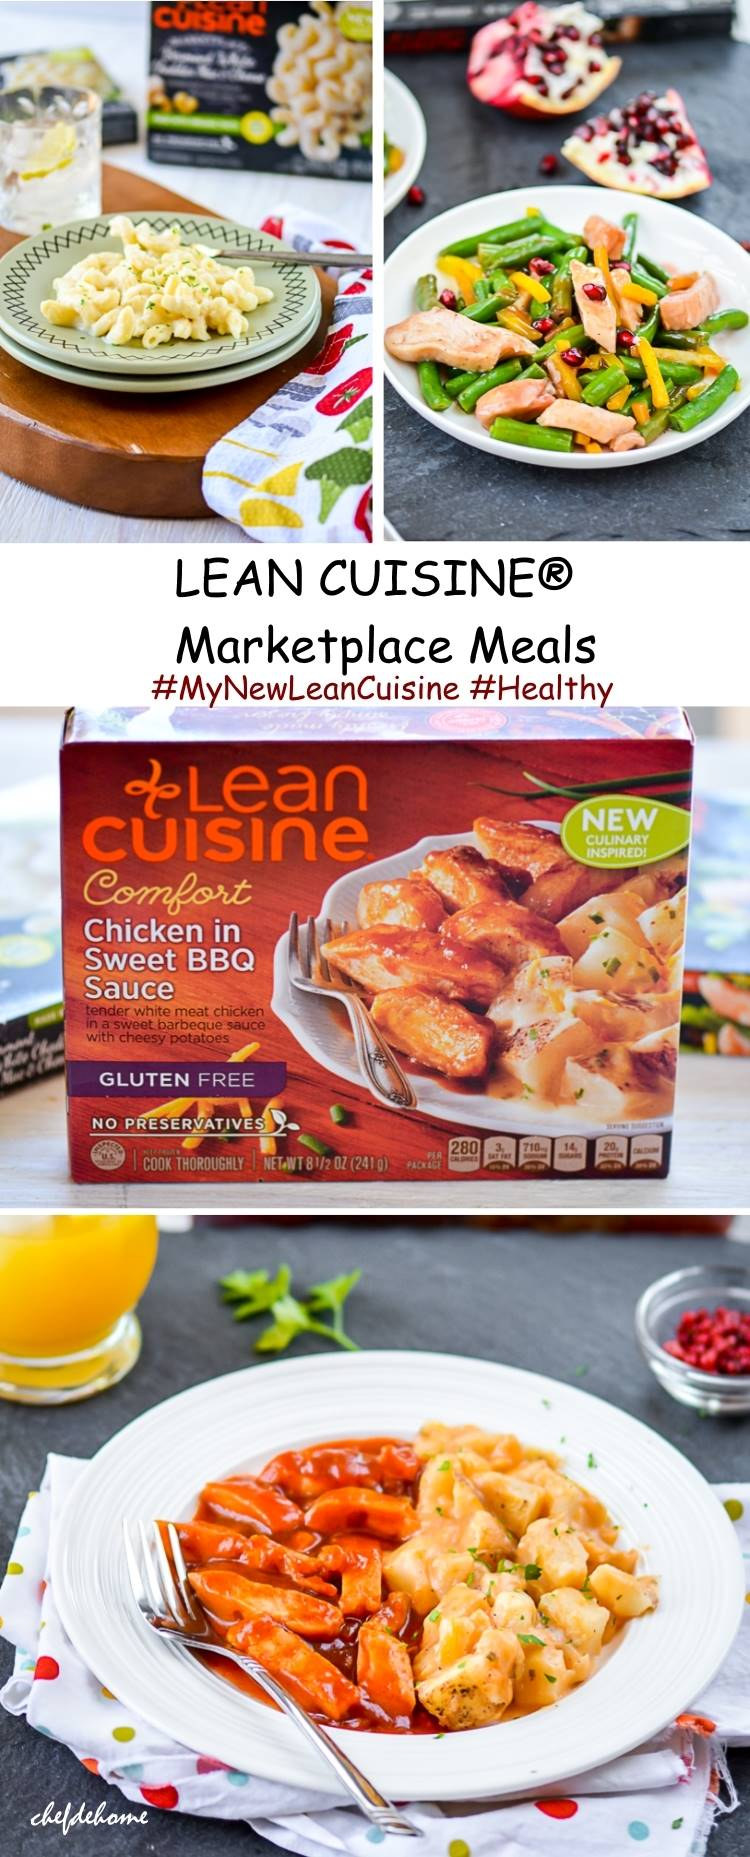 Lean Cuisine Marketplace Meals | chefdehome.com